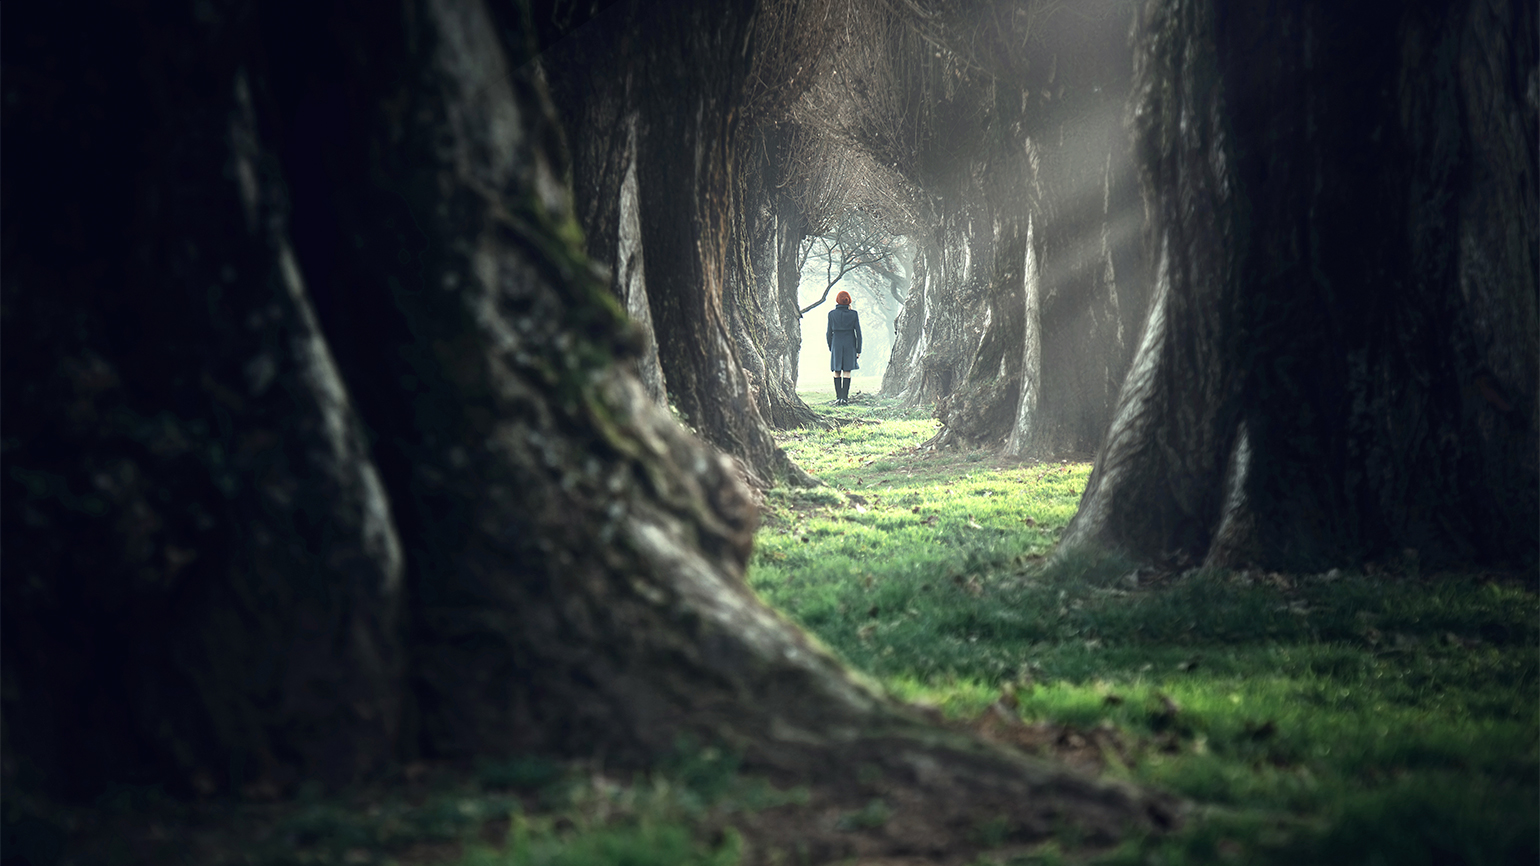 A woman walks alone in a forest